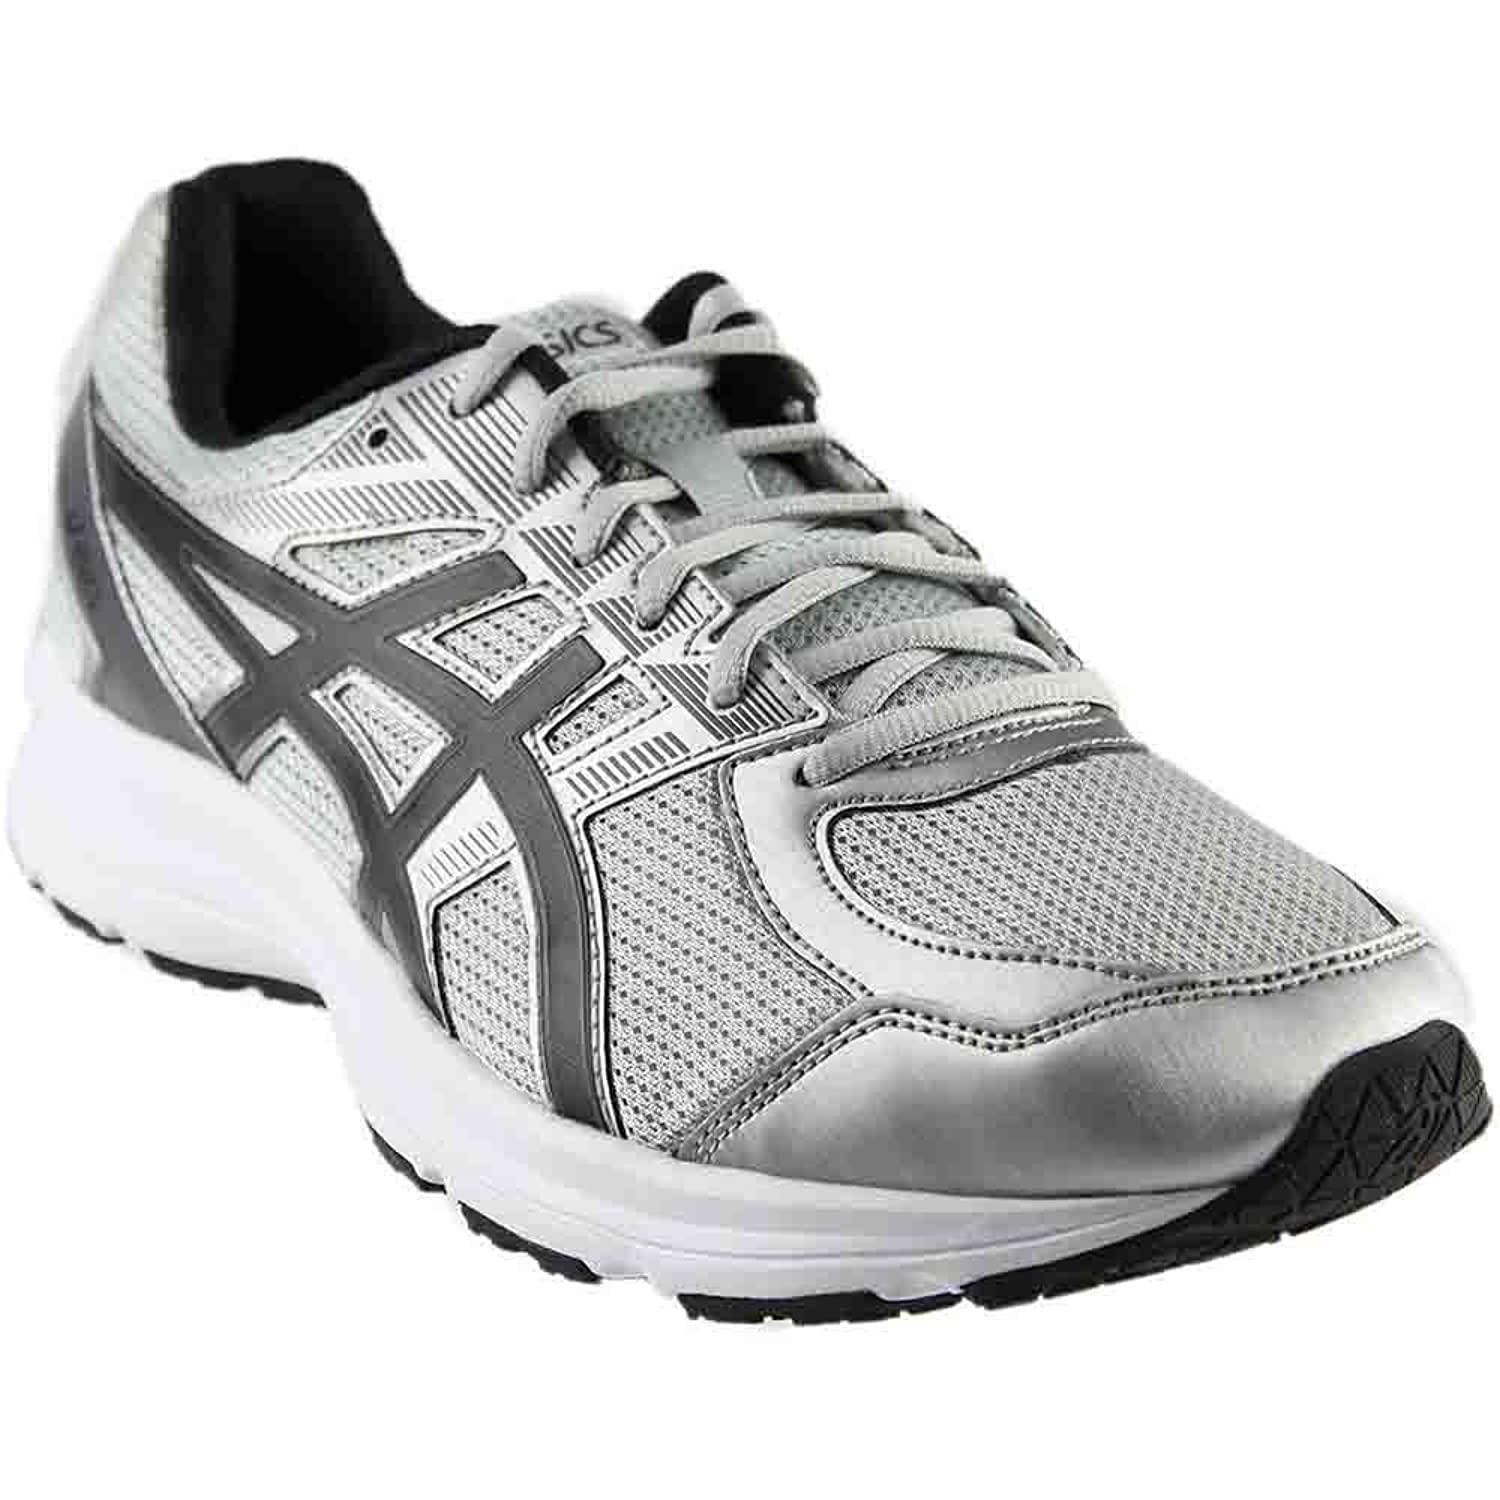 Asics Men's T7 K4 N.9793 Jolt Running Shoes by Asics